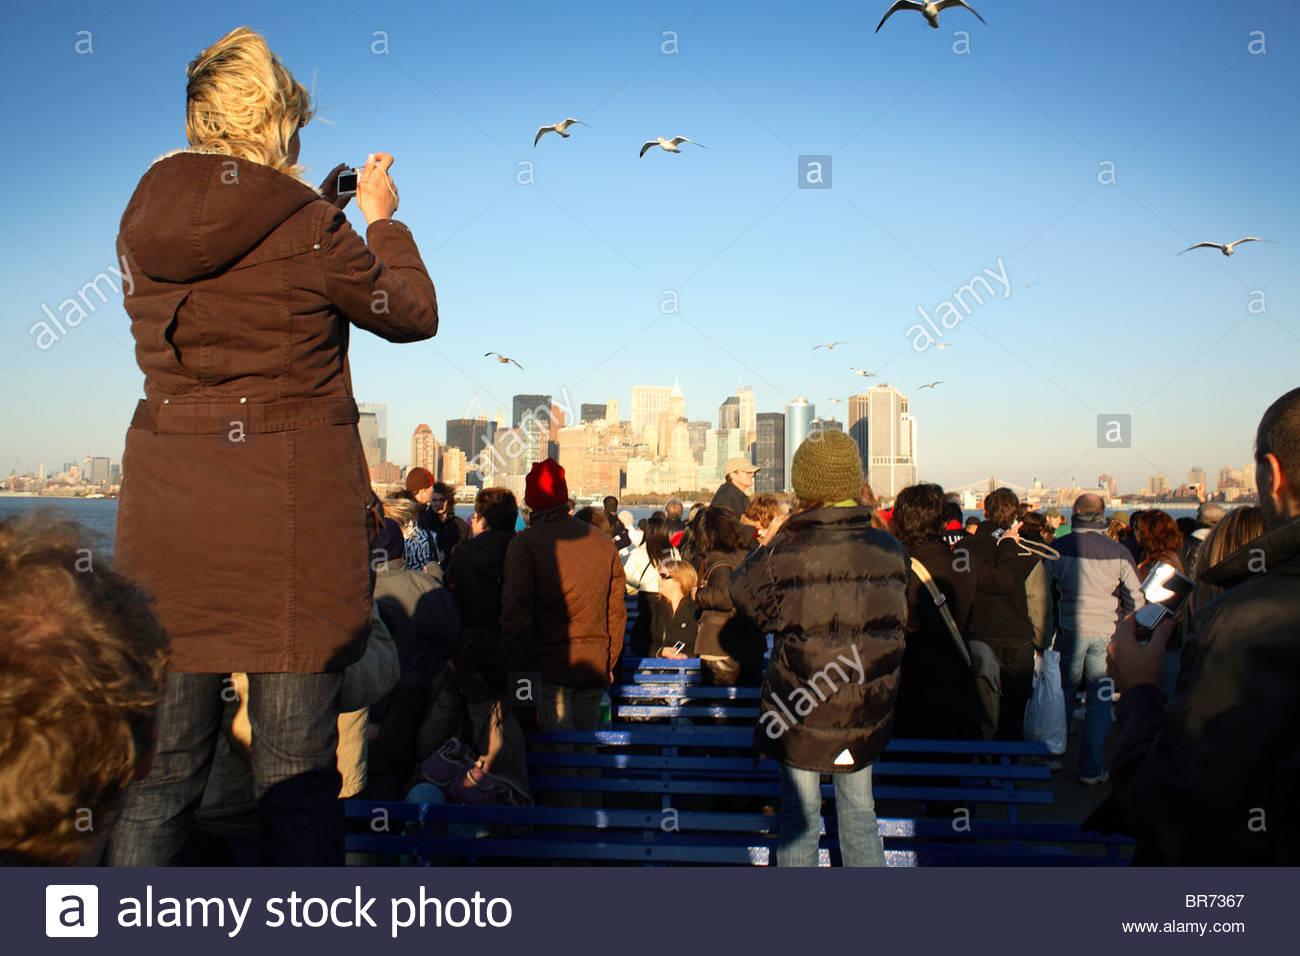 Tourists get a view of NYC from the Ellis Island ferry. - Stock Image